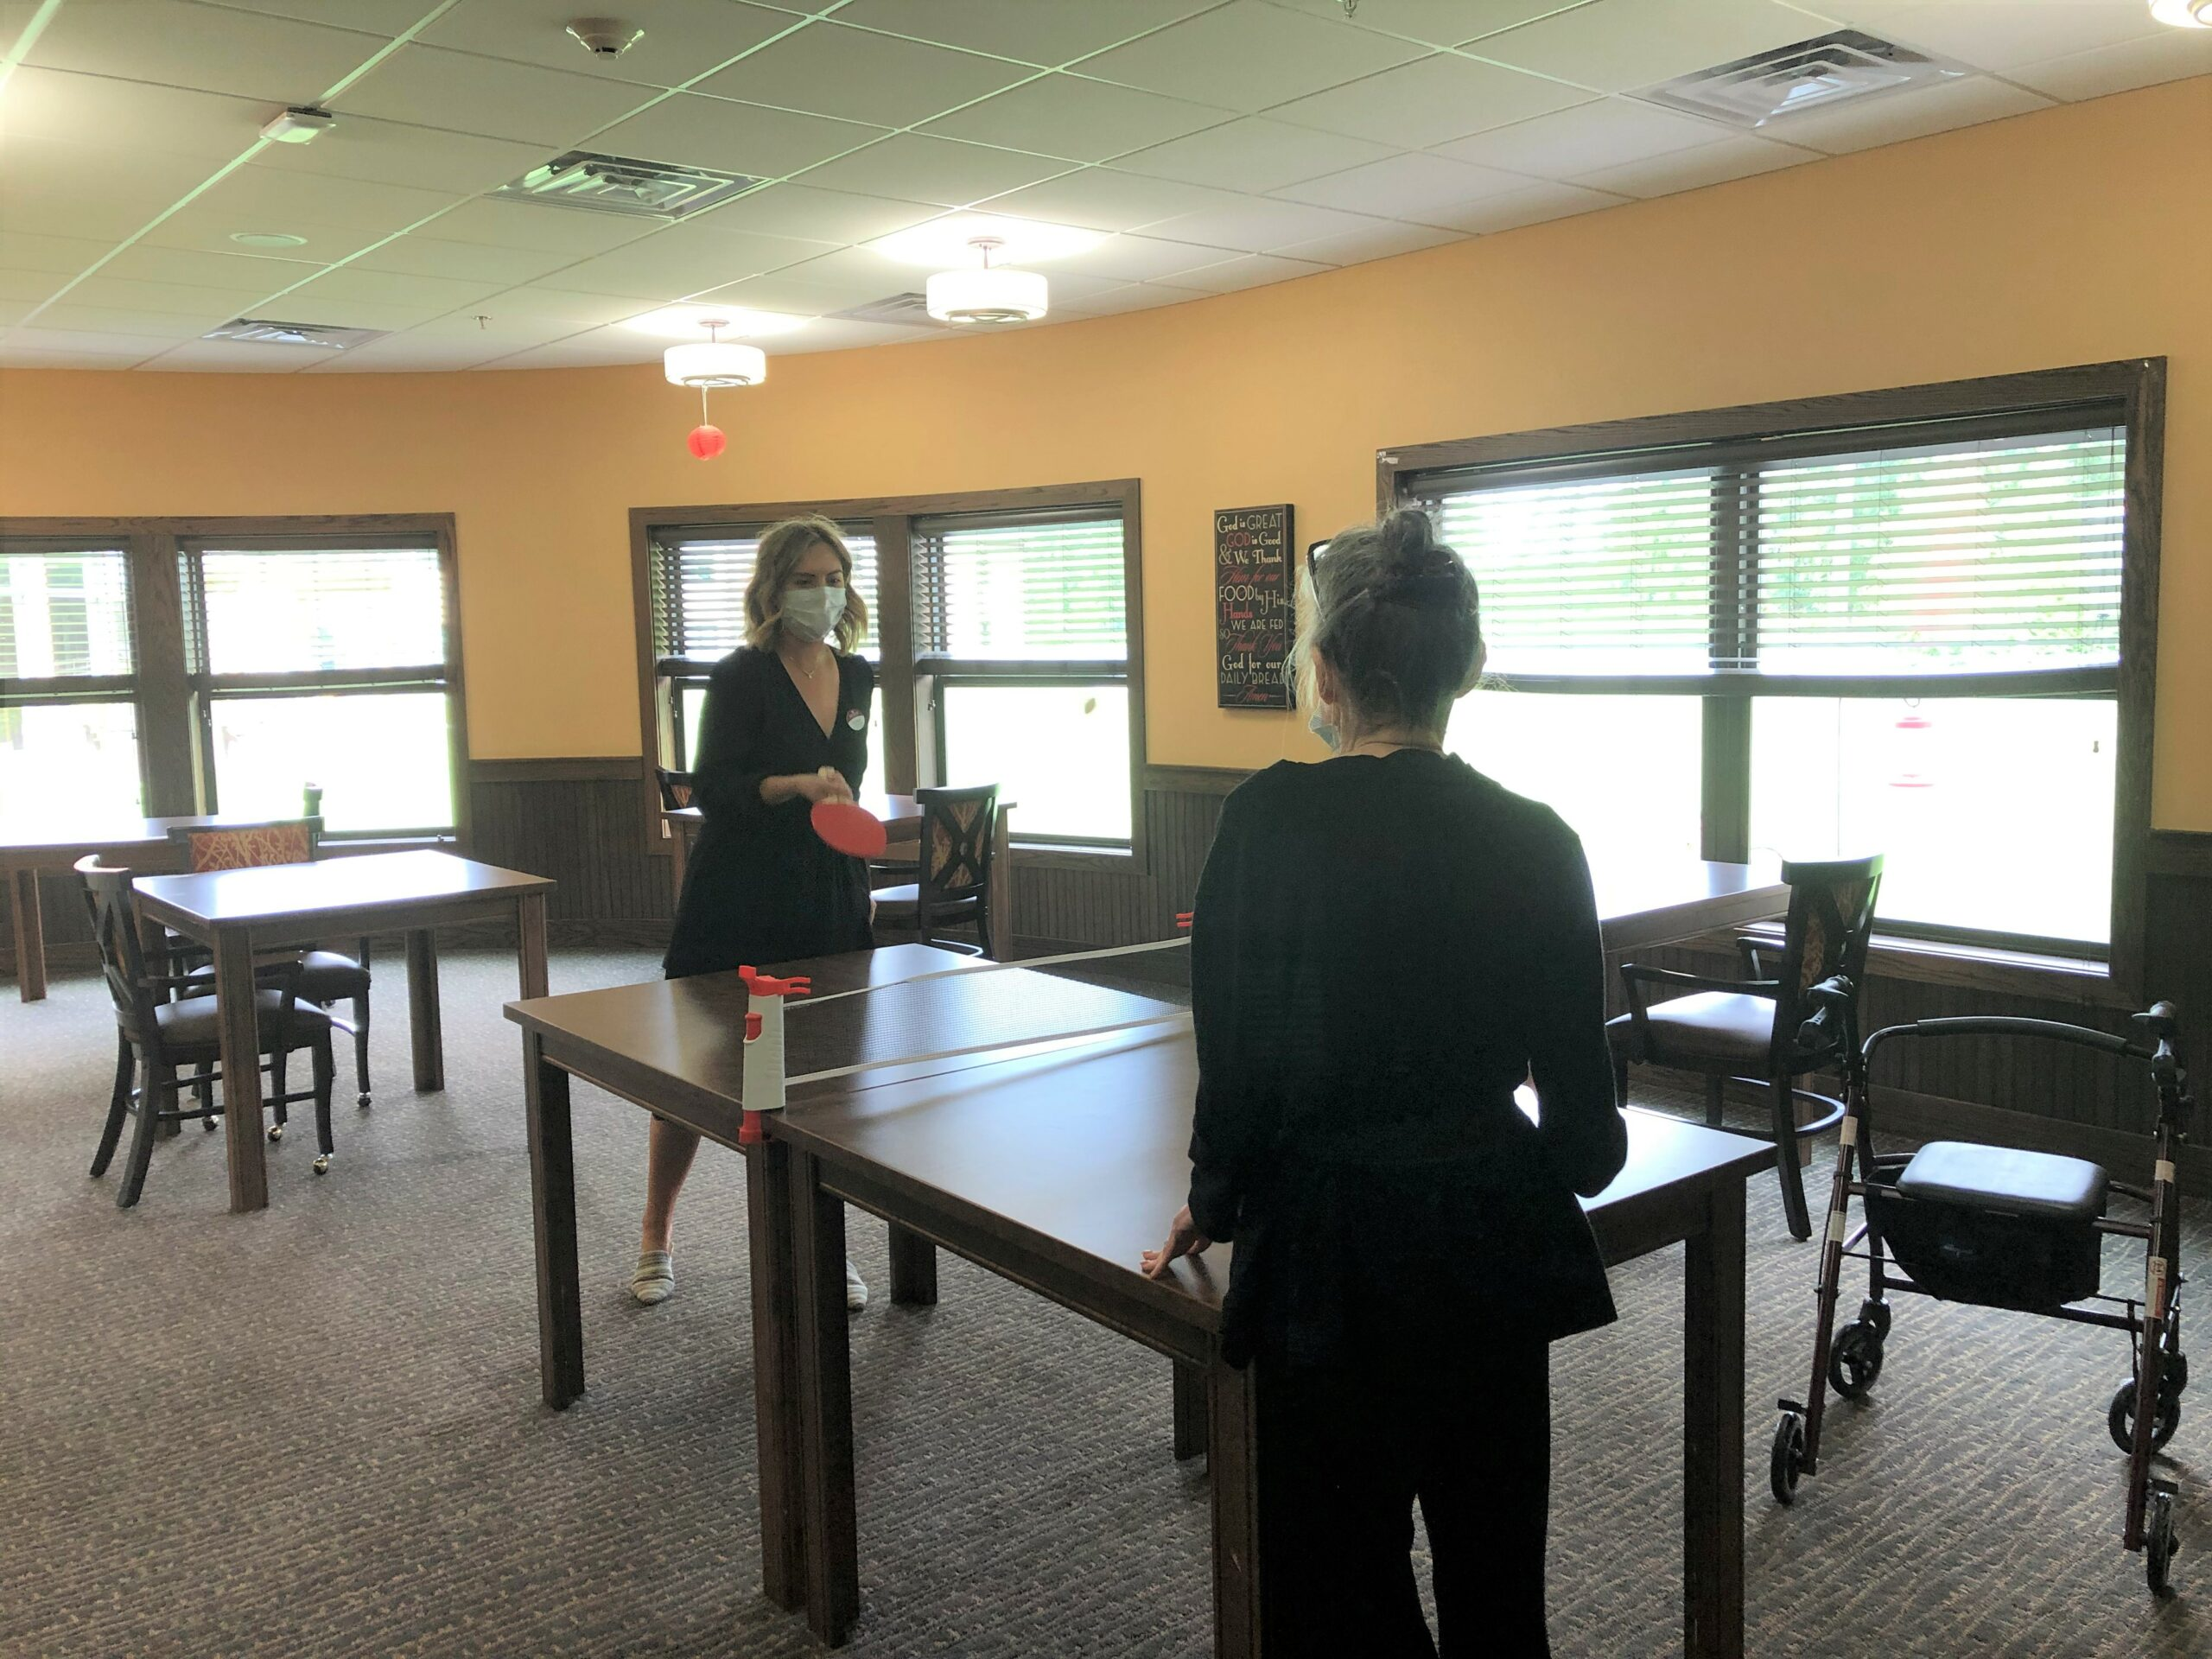 Martha loves playing table tennis with LEC Melissa. It's a great way to exercise together from six feet away!